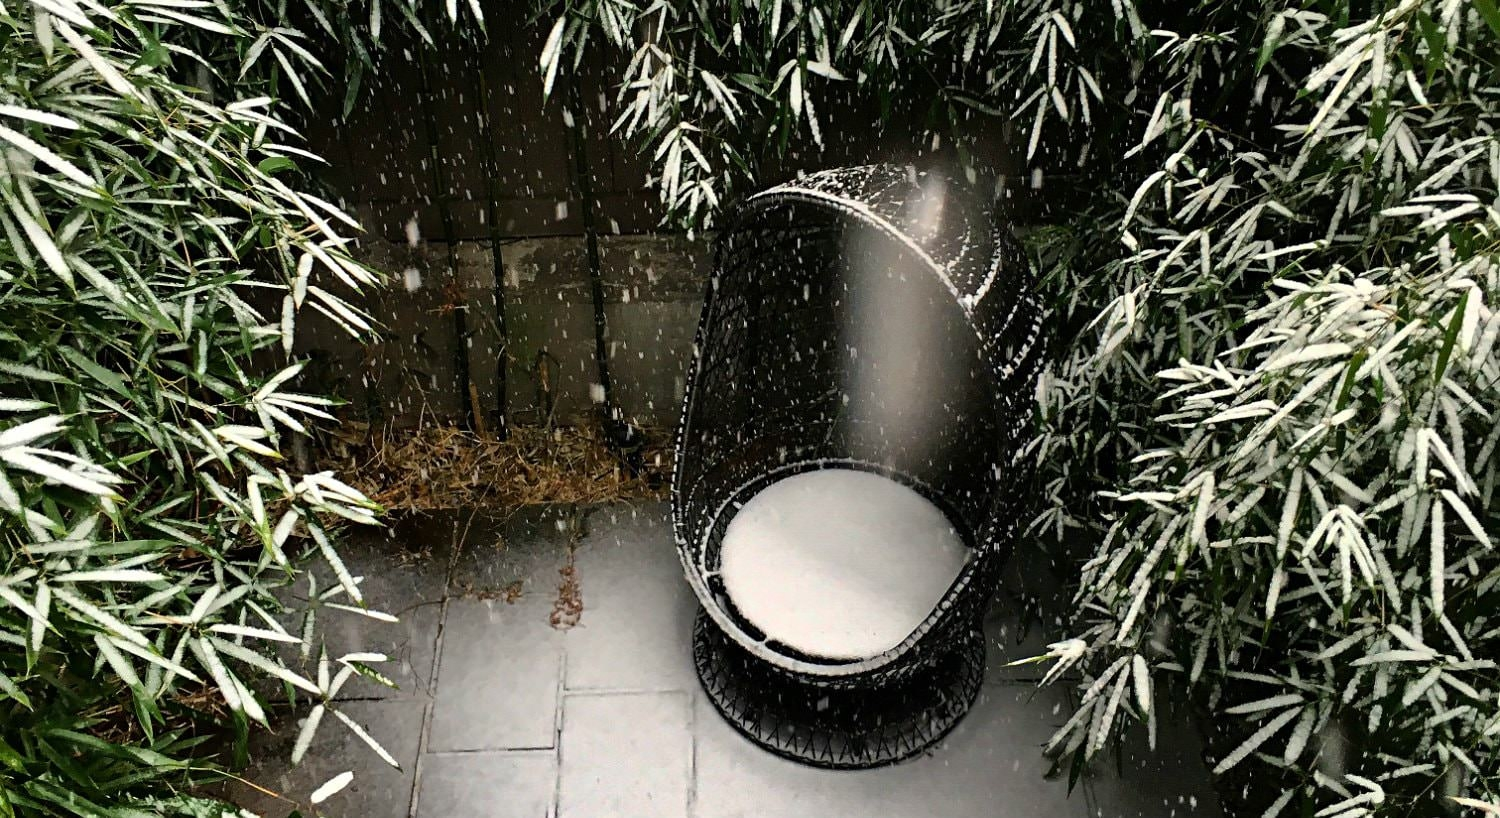 Snow falling on a black cacoon patio chair and nearby plants